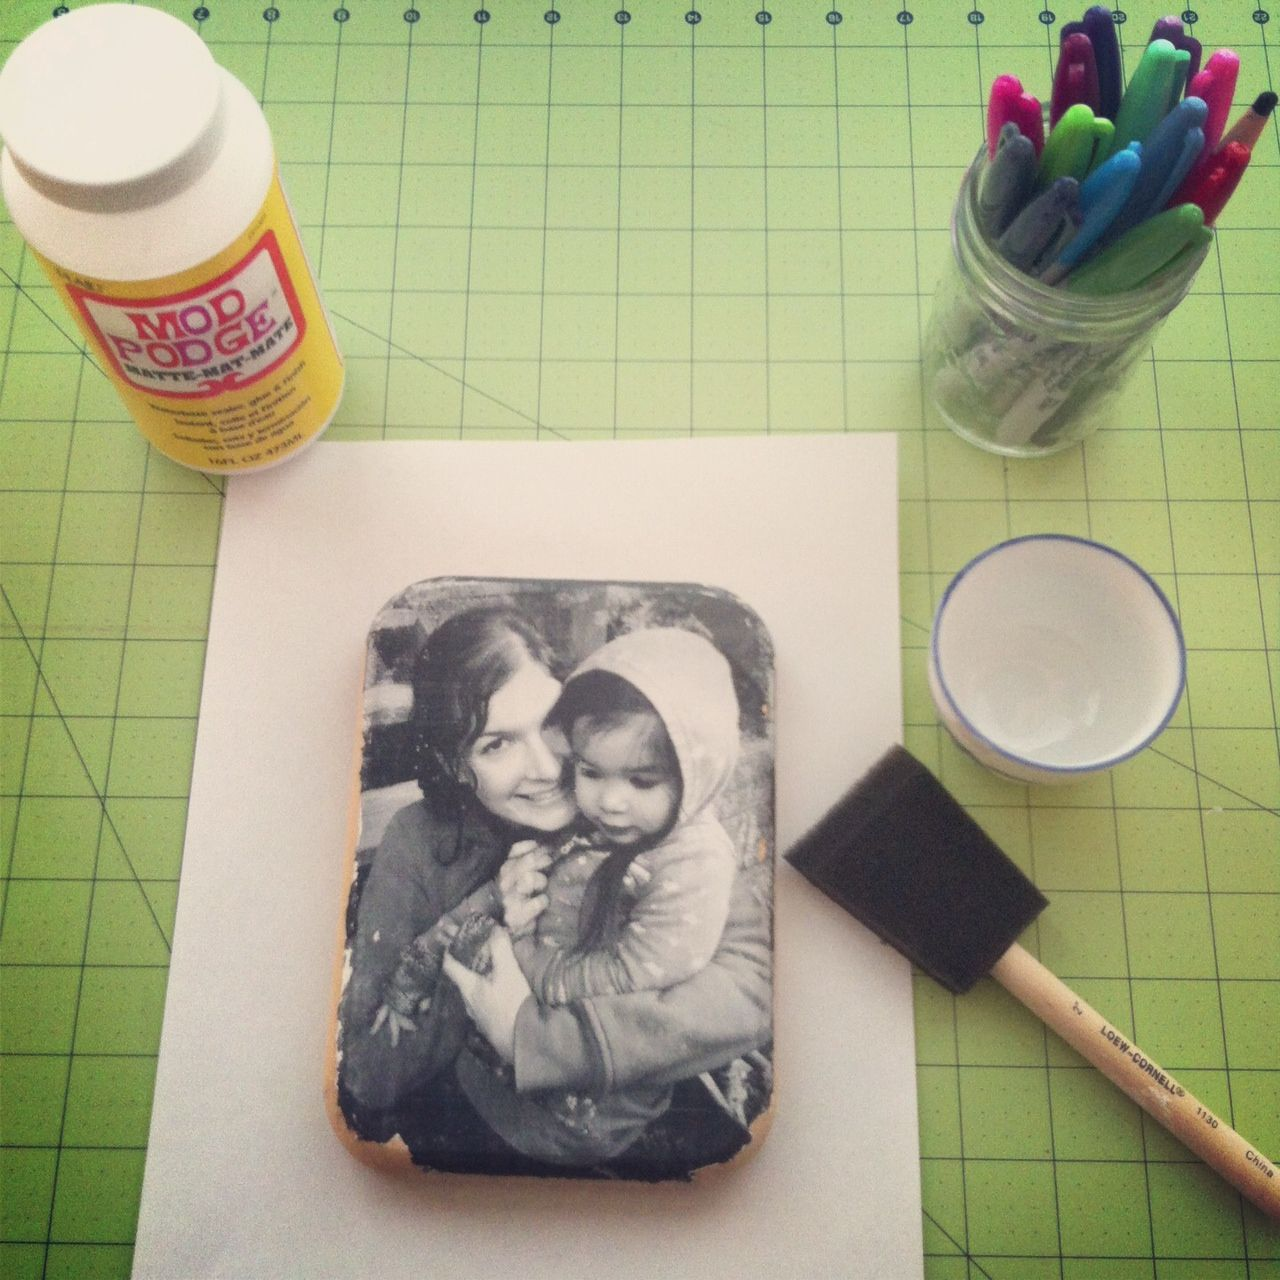 Photo To Wood Transfer Tutorial With Step By Step Photos And